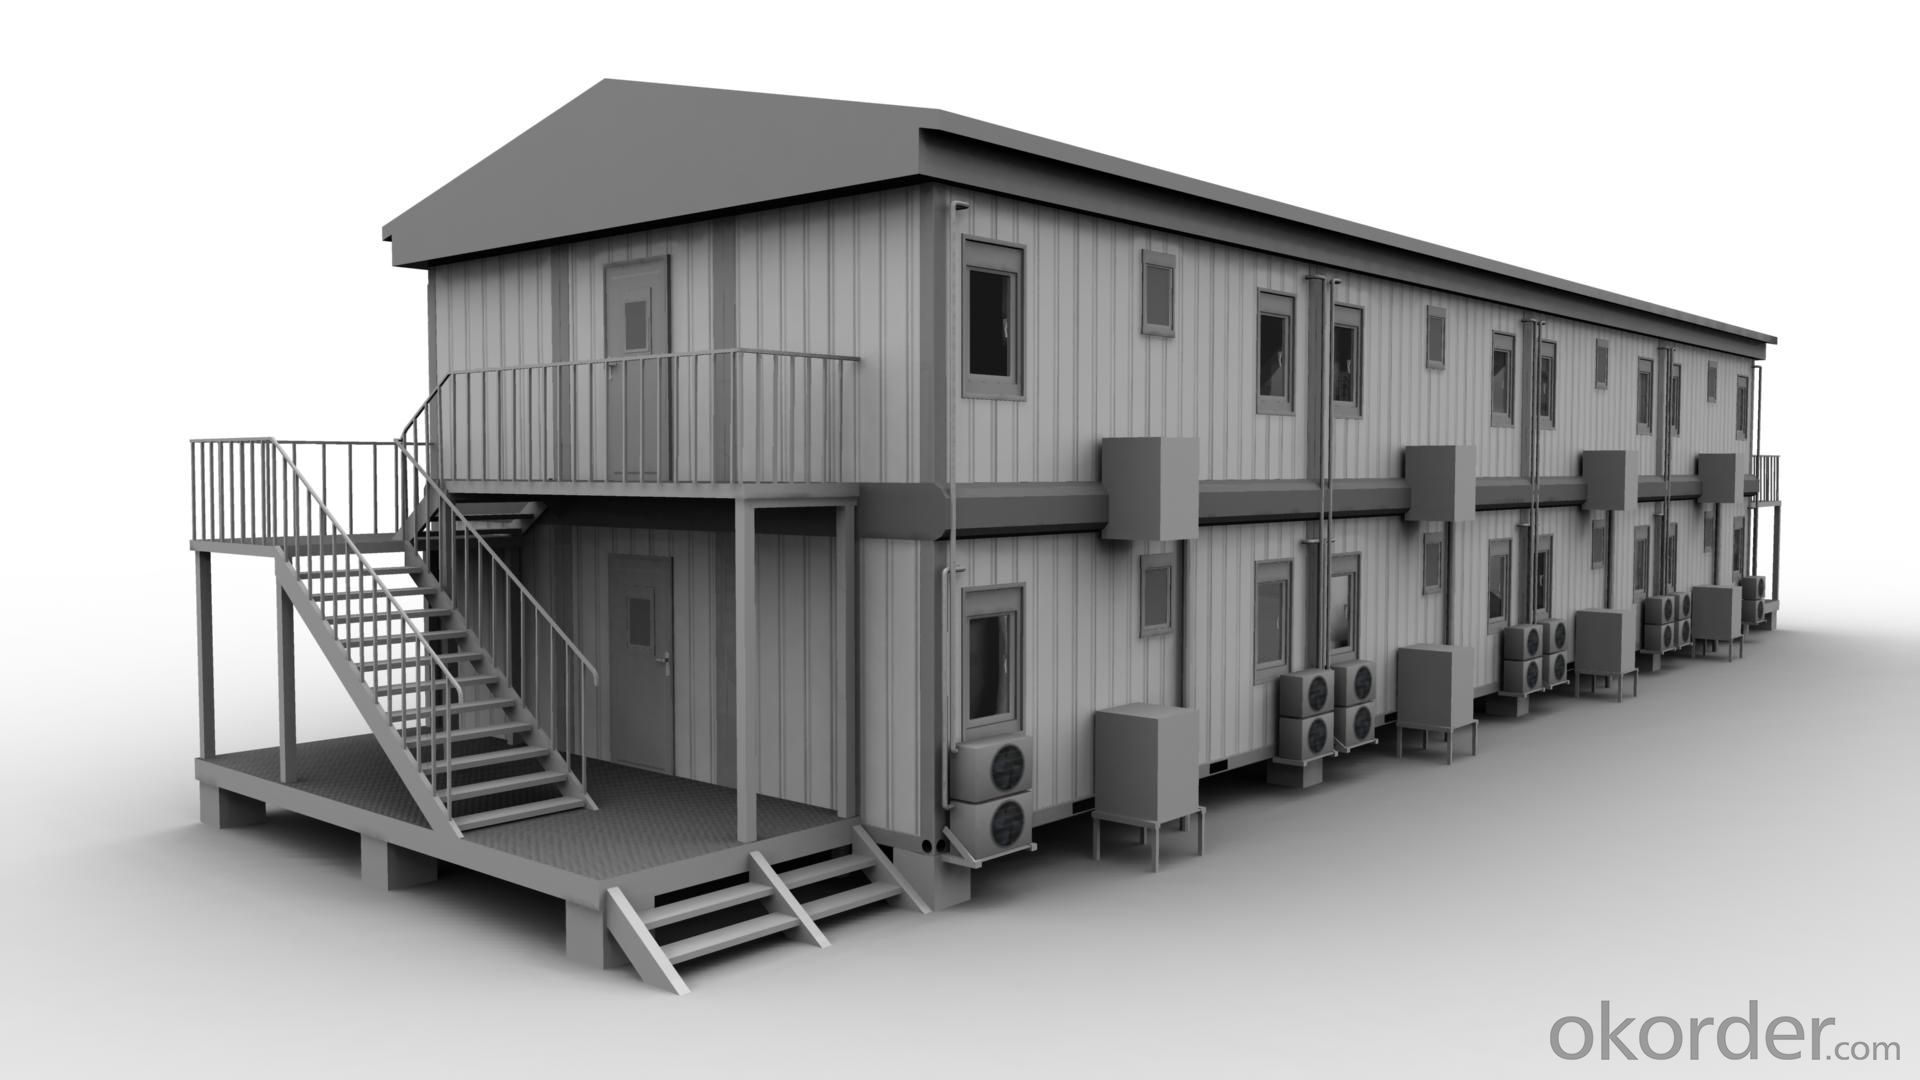 Buy container houses 20ft container home for fast built building price size weight model width - Container built homes ...